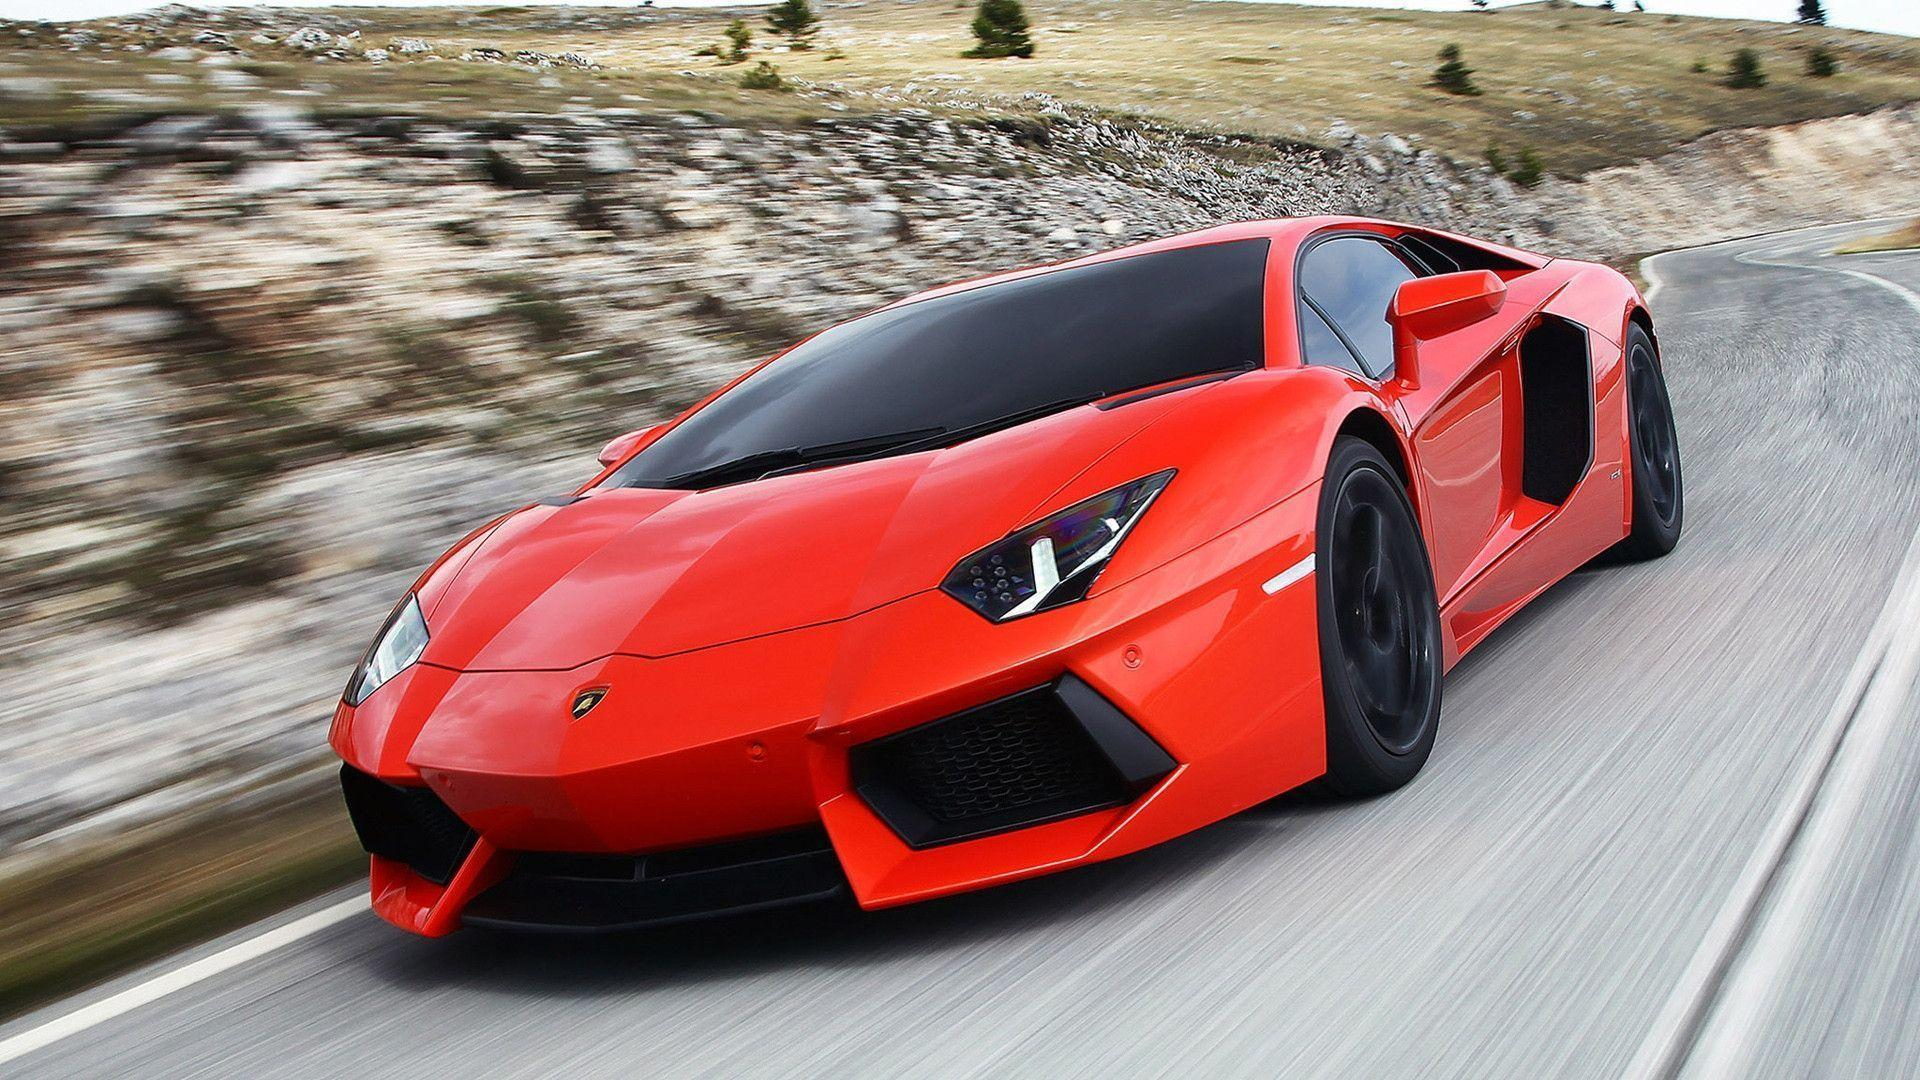 Lamborghini Aventador Wallpapers Wallpaper Cave